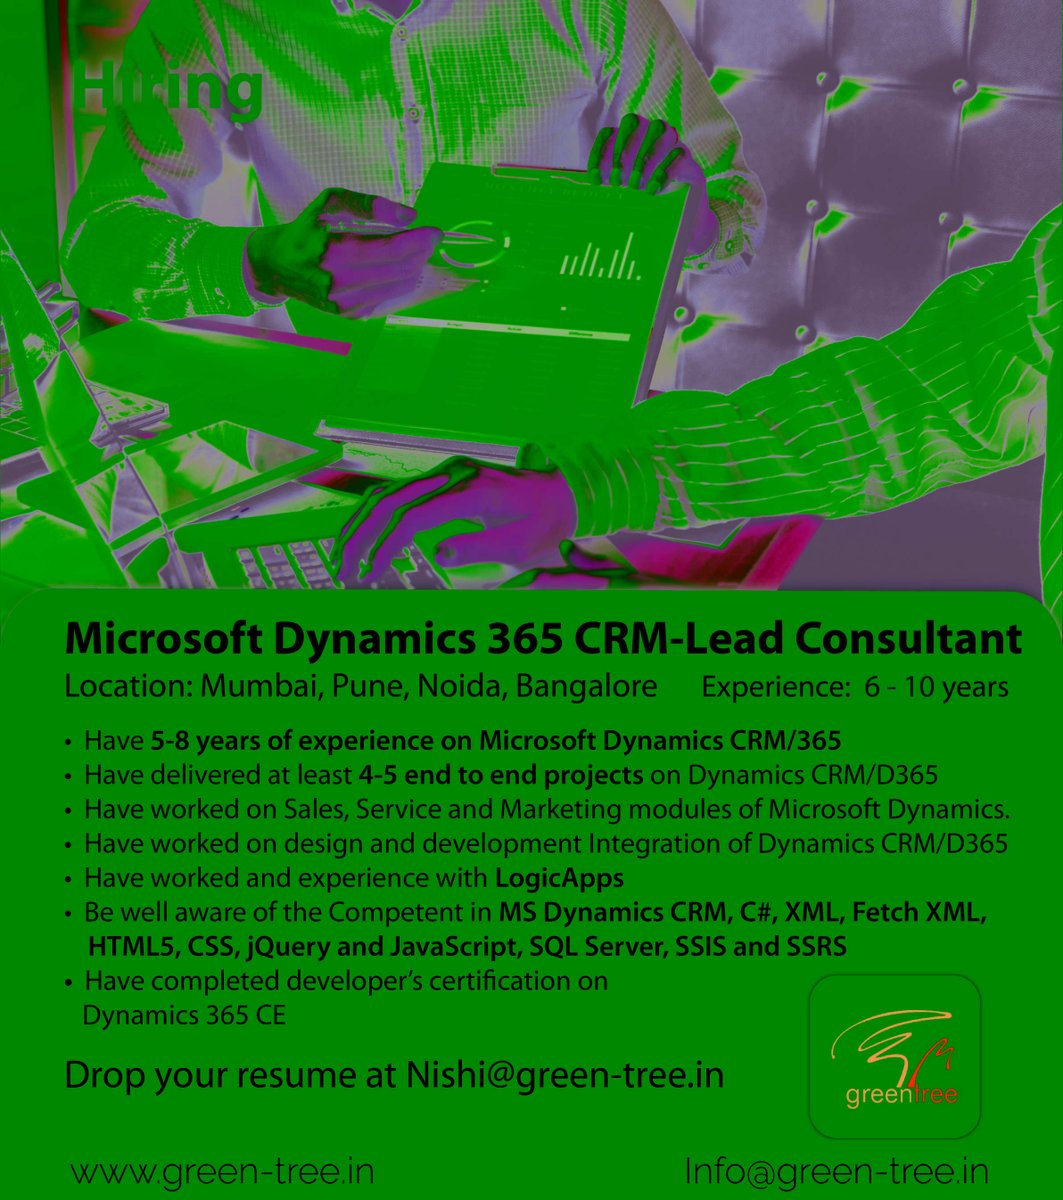 #WeareHiring Microsoft Dynamics 365 CRM-Lead Consultant  Follow #Greentree for daily Job updates! #CRM #erp #microsoftazure #microsoftdynamics #crmsoftware #crmintegration #crmsystem #salesforce #salesforcecrm #crmsolutions #crmjobs #dynamics365 #dynamics365crm https://t.co/76PYvypqjB